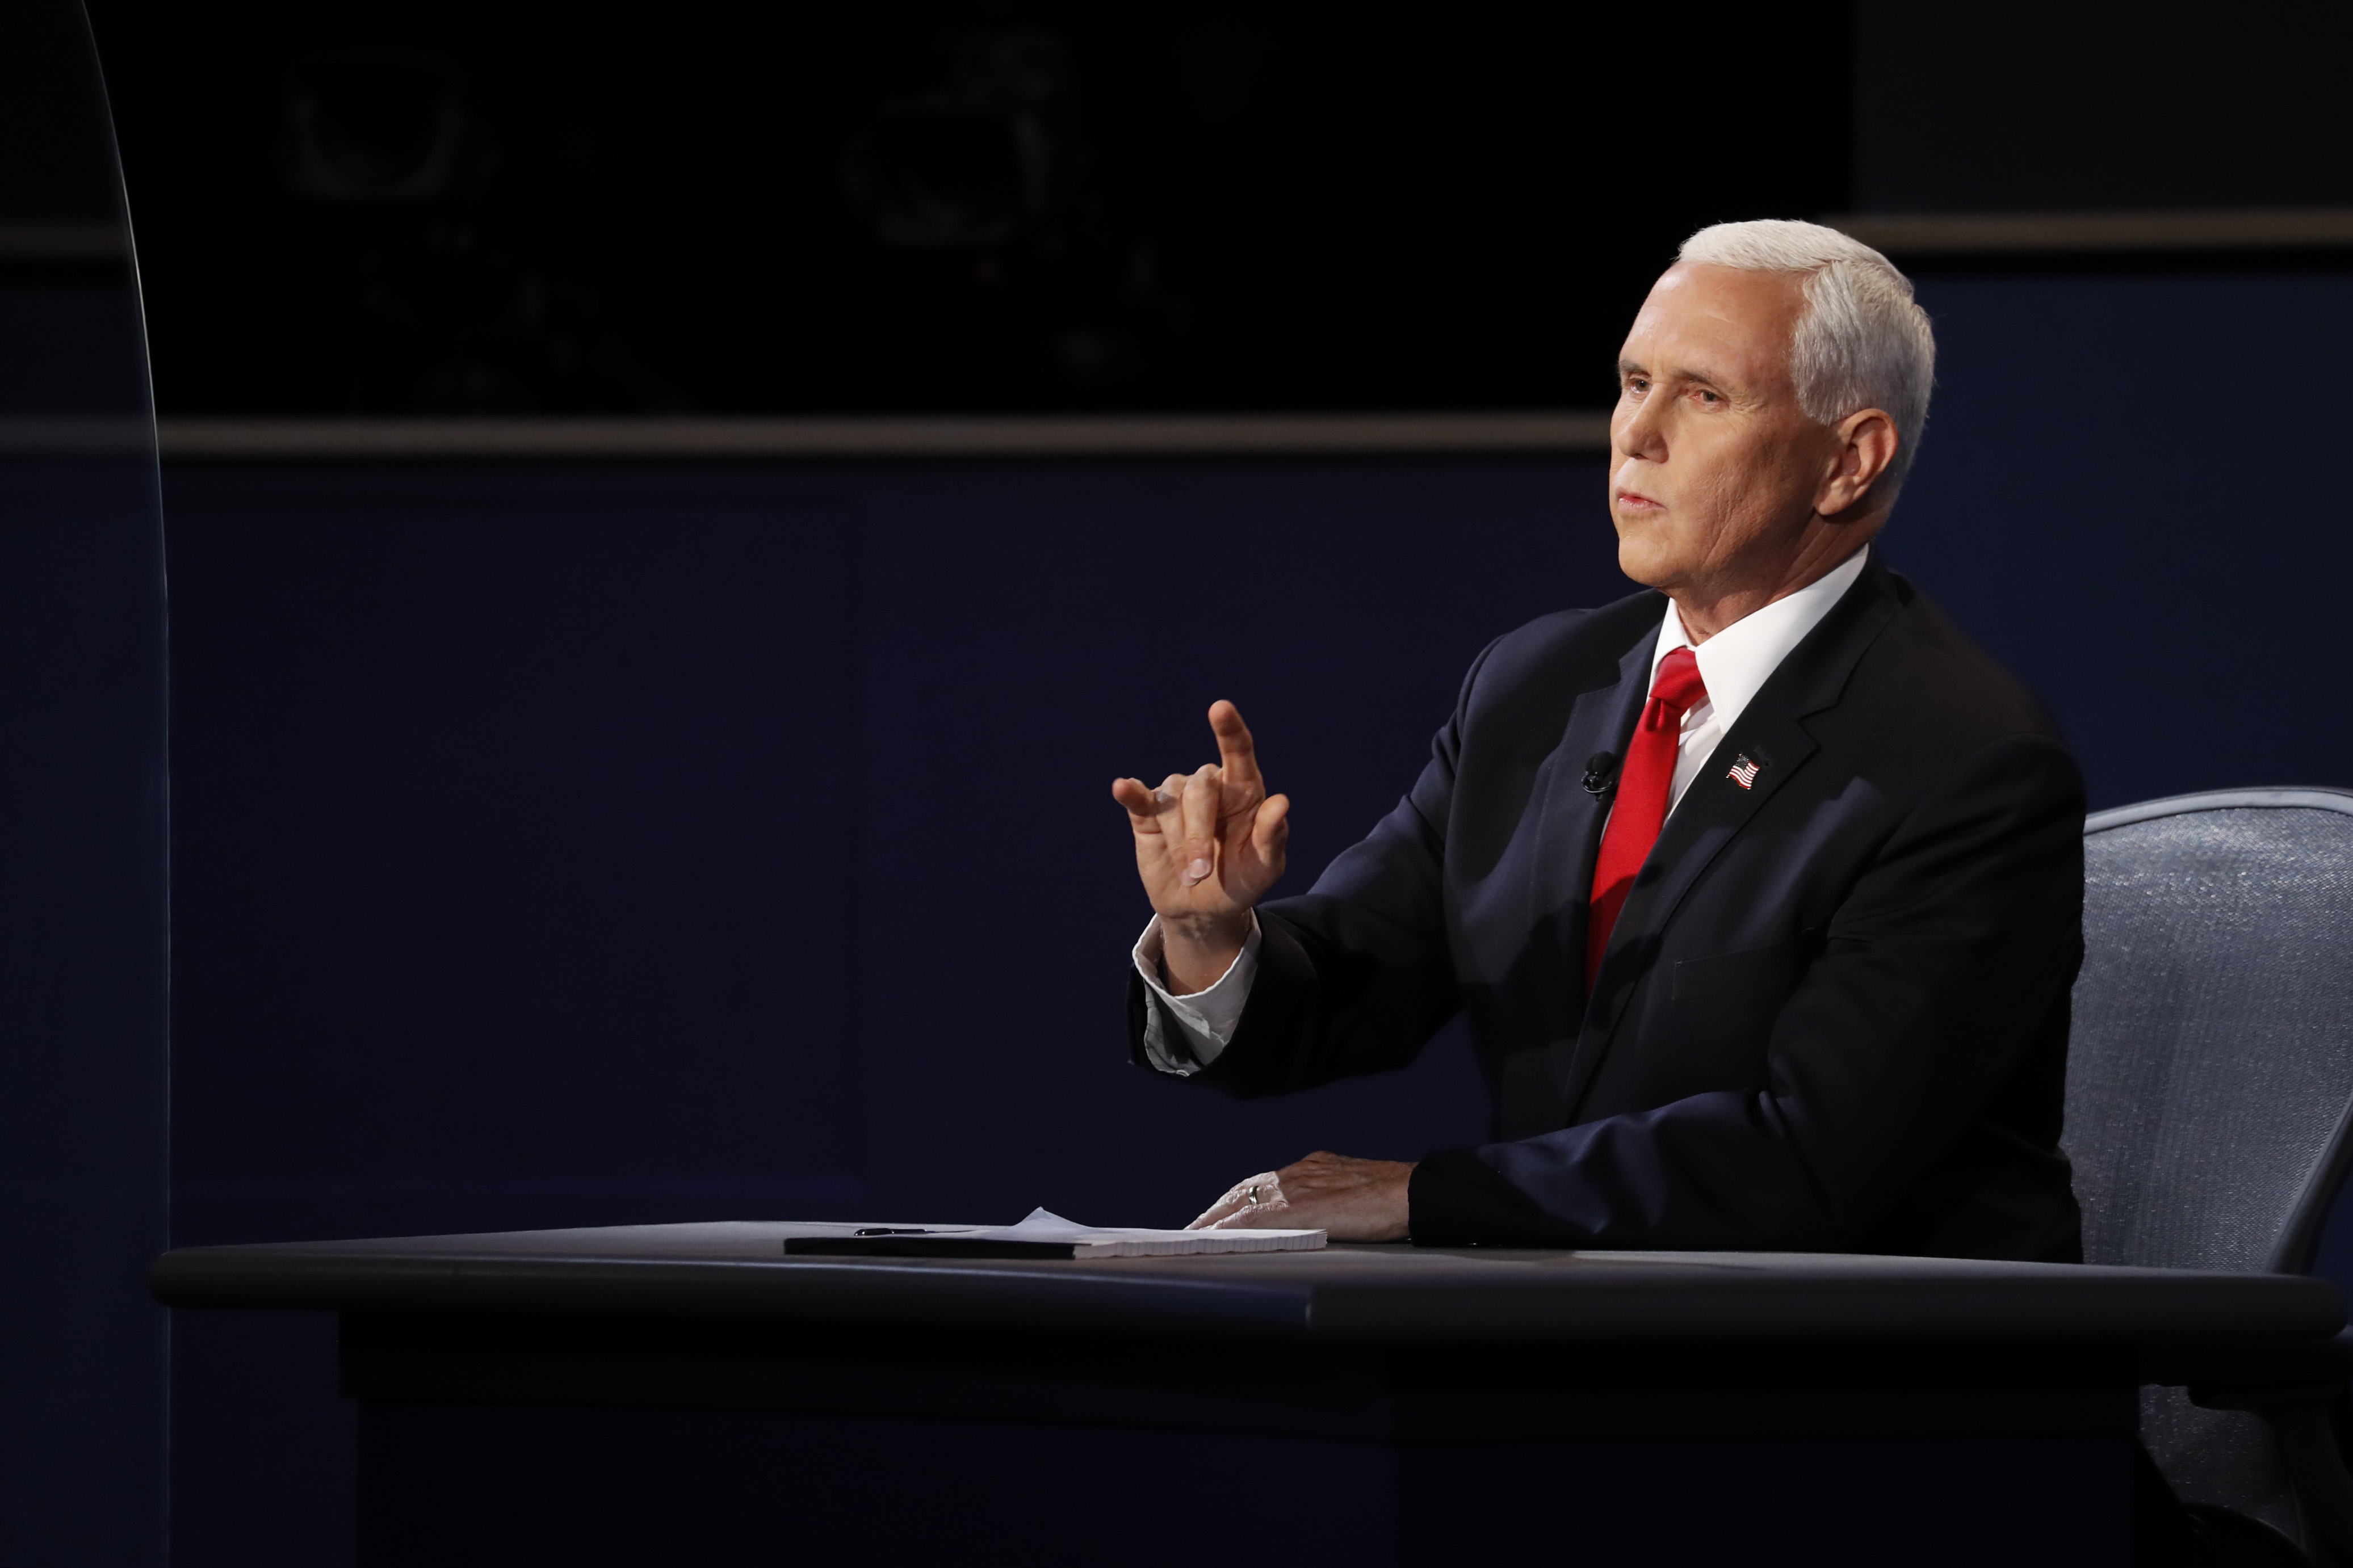 Mike Pence, head of the coronavirus task force, struggles to answer questions during debate thumbnail